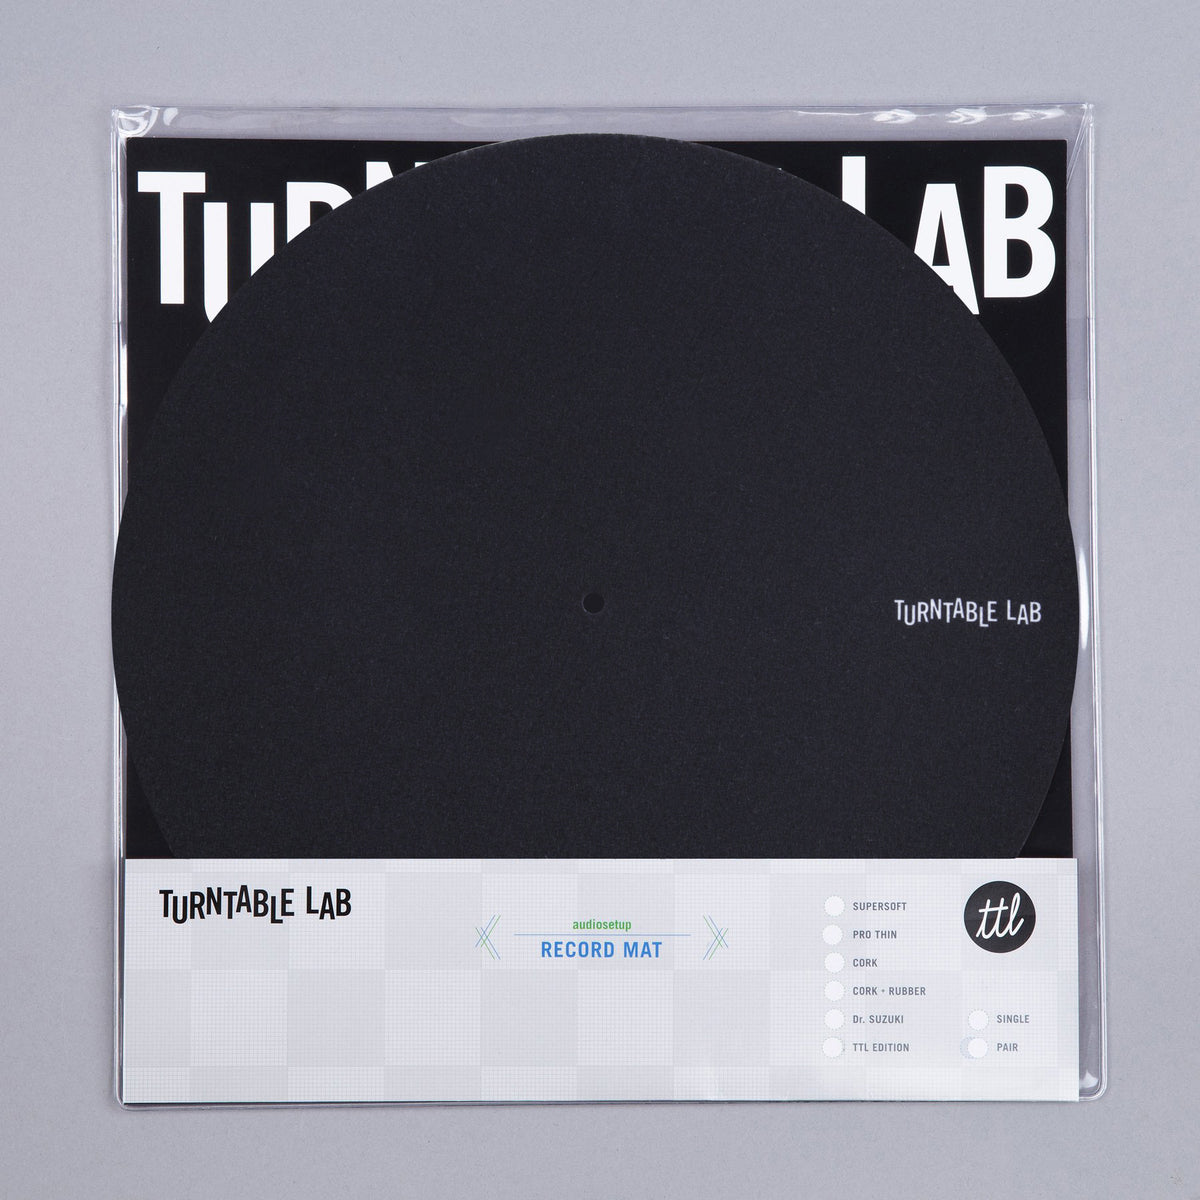 Turntable Lab: Pro Thin Slipmat Record Mats (Technics Style) - Black